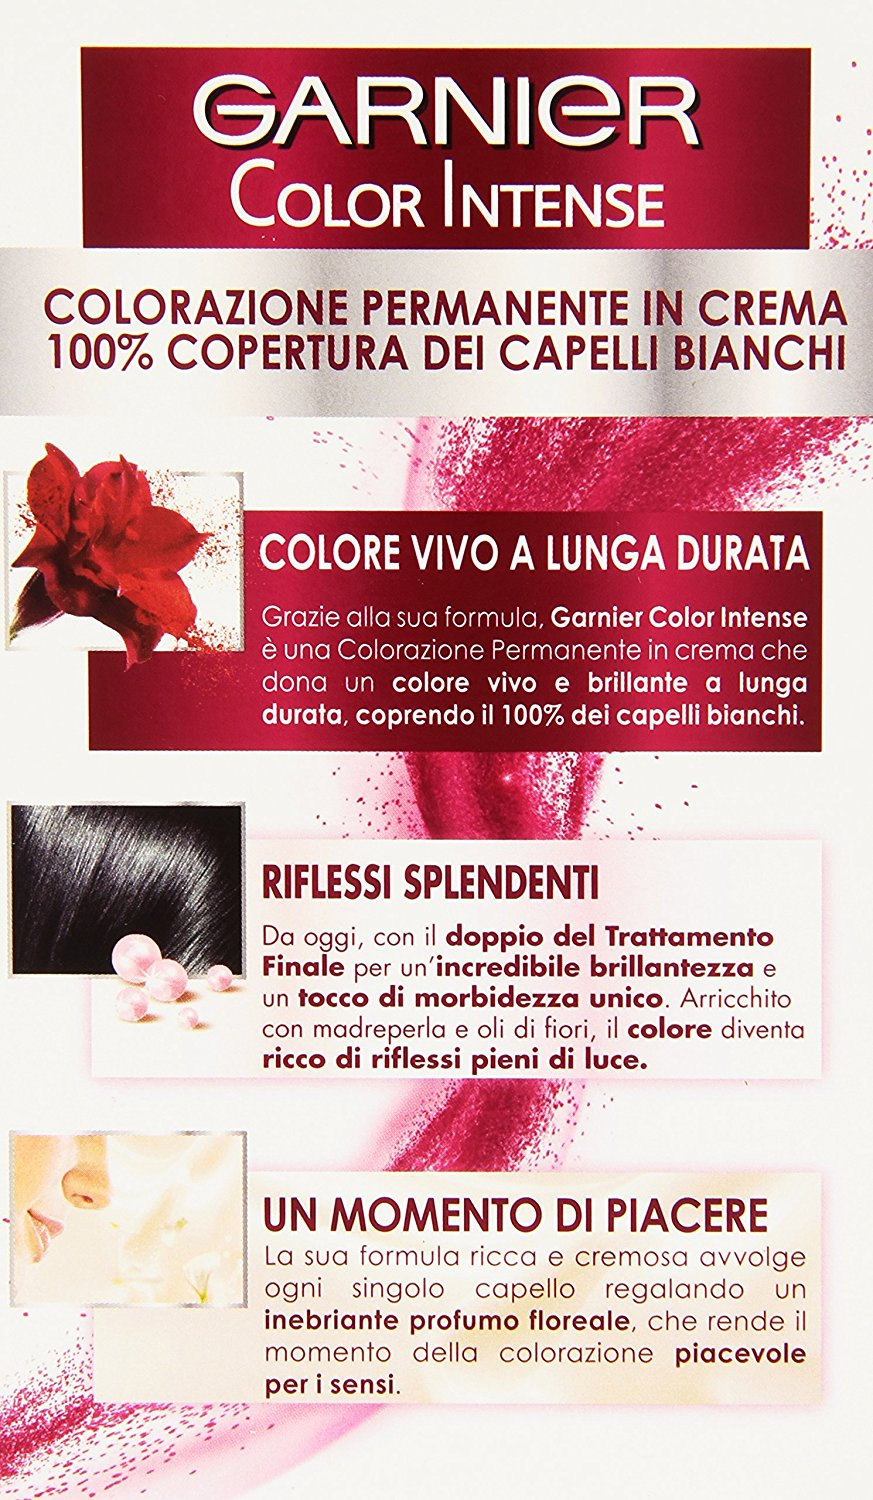 Garnier Garnier Color Intense Colorazione Permanente in Crema ... 83bd837d4a94